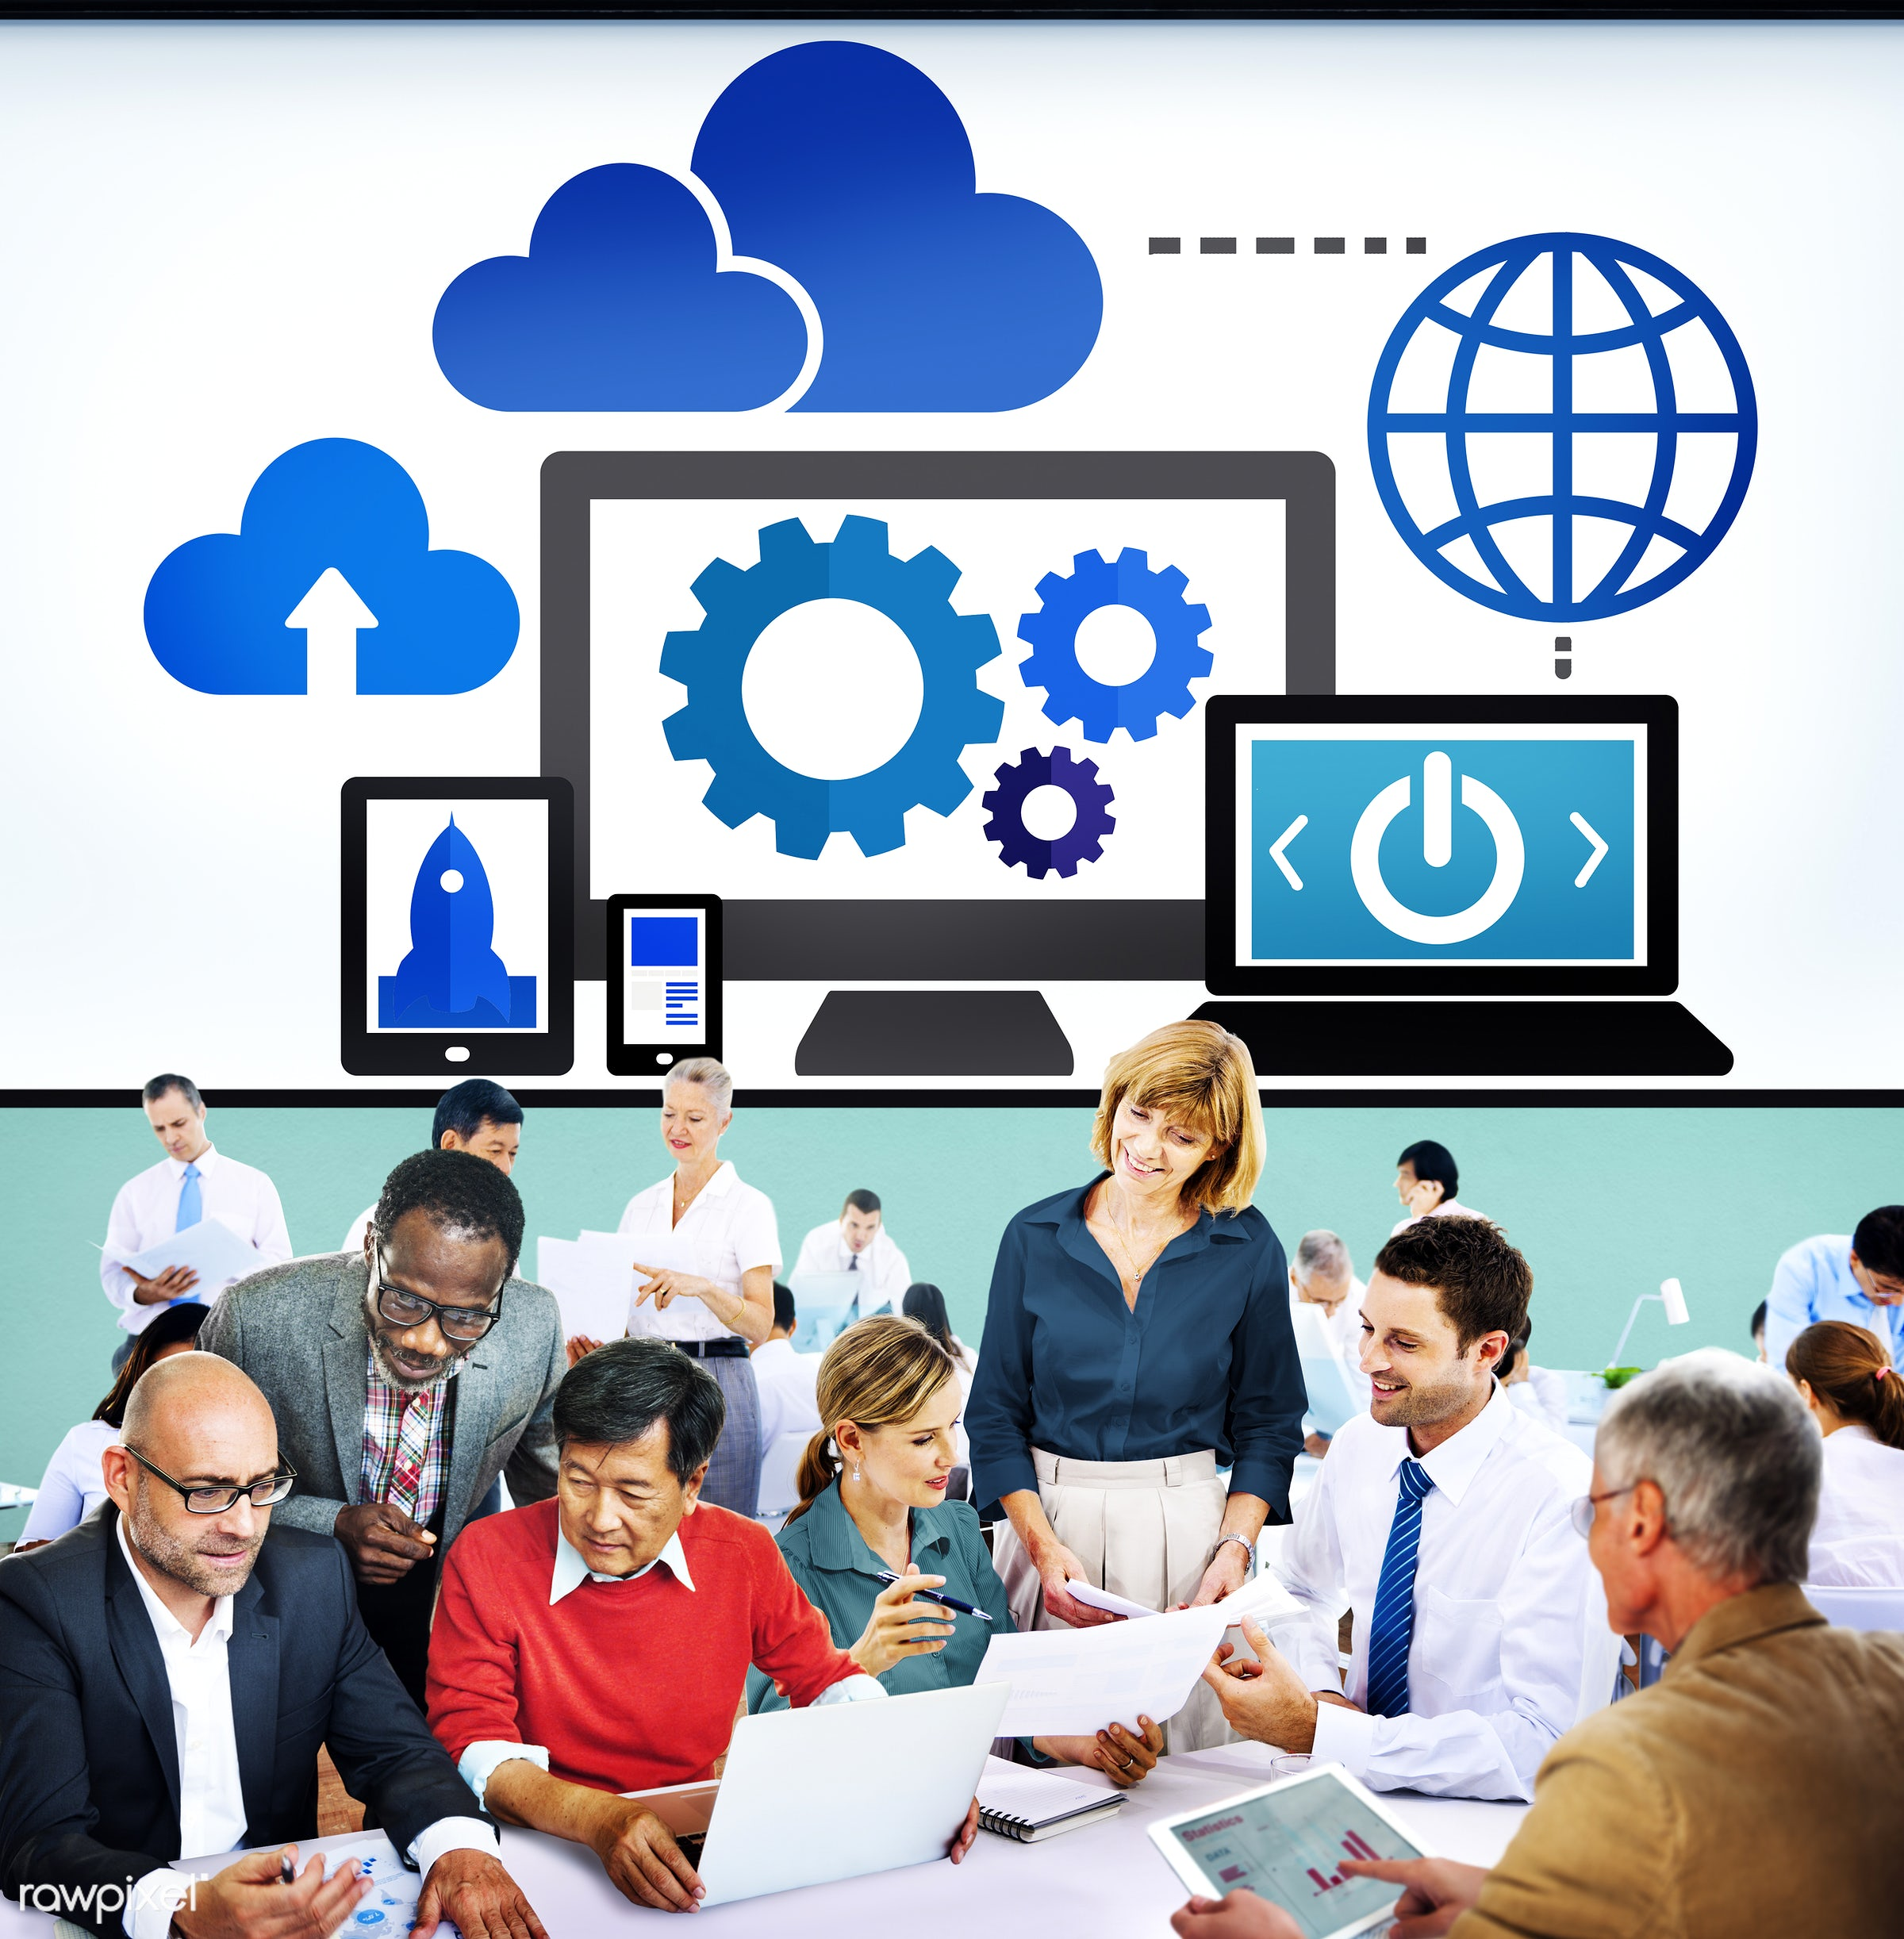 analysis, big data, business, business people, businessmen, businesswomen, busy, cloud, cloud computing, cloud network, cog...